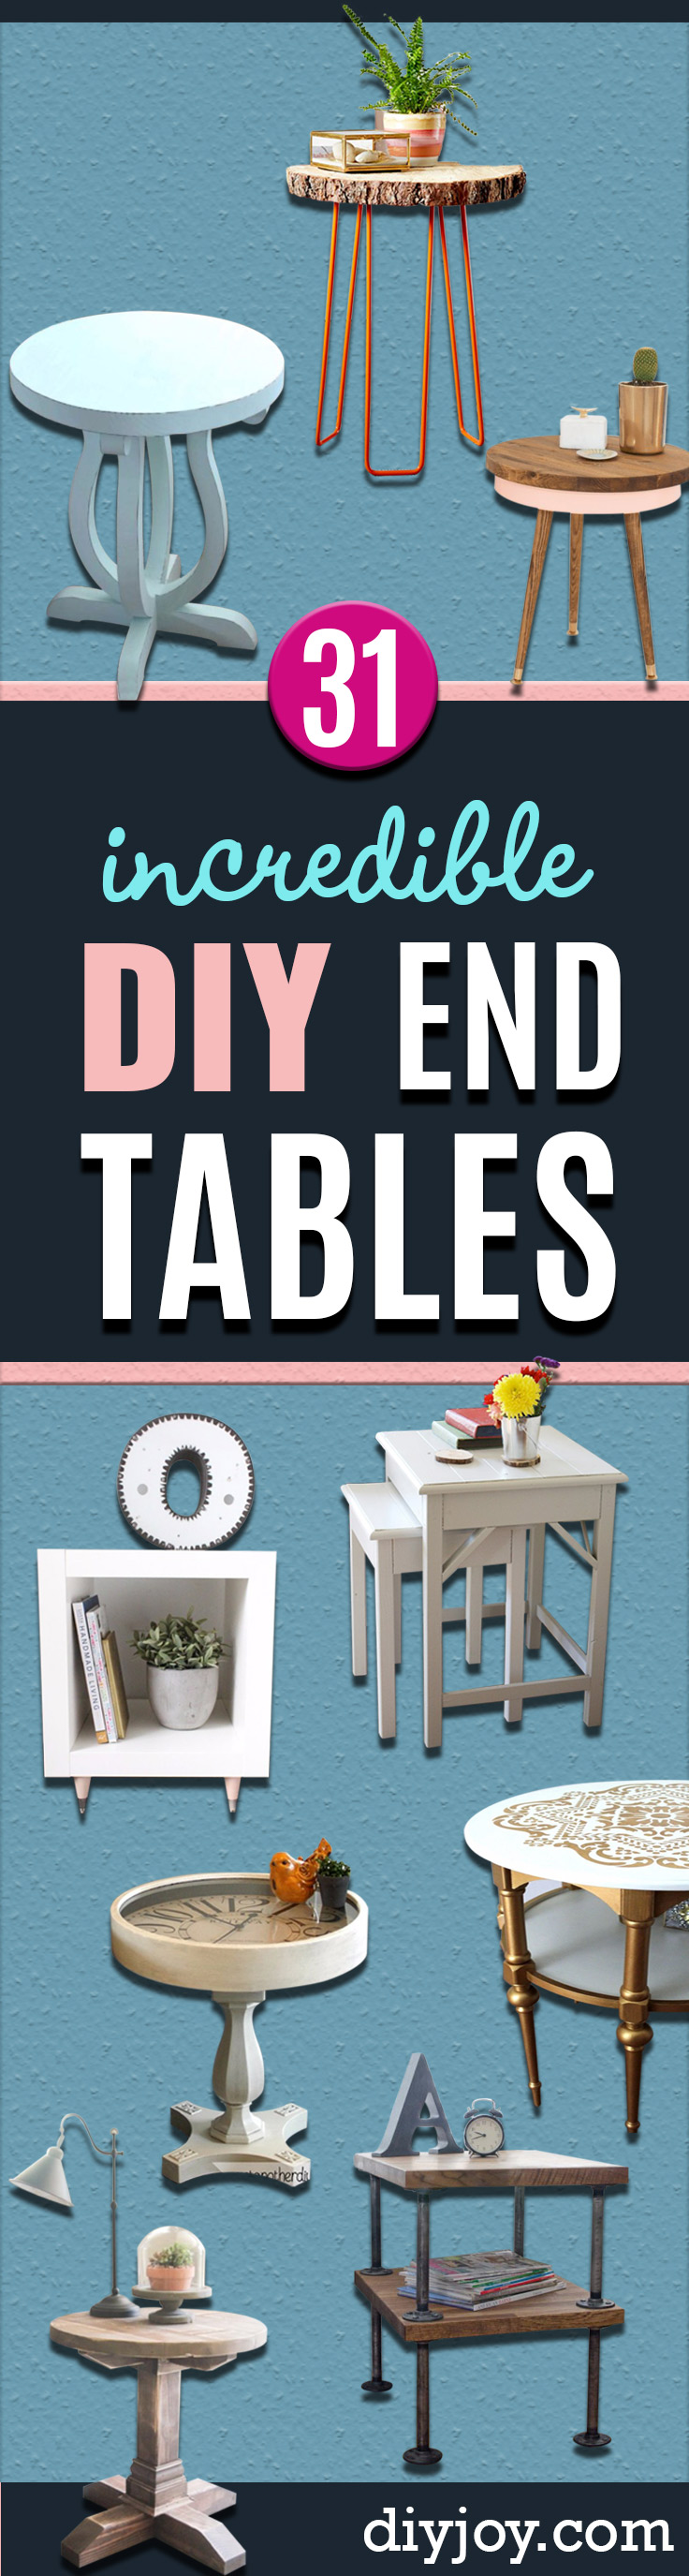 DIY End Tables with Step by Step Tutorials - Cheap and Easy End Table Projects and Plans - Wood, Storage, Pallet, Crate, Modern and Rustic. Bedroom and Living Room Decor Ideas